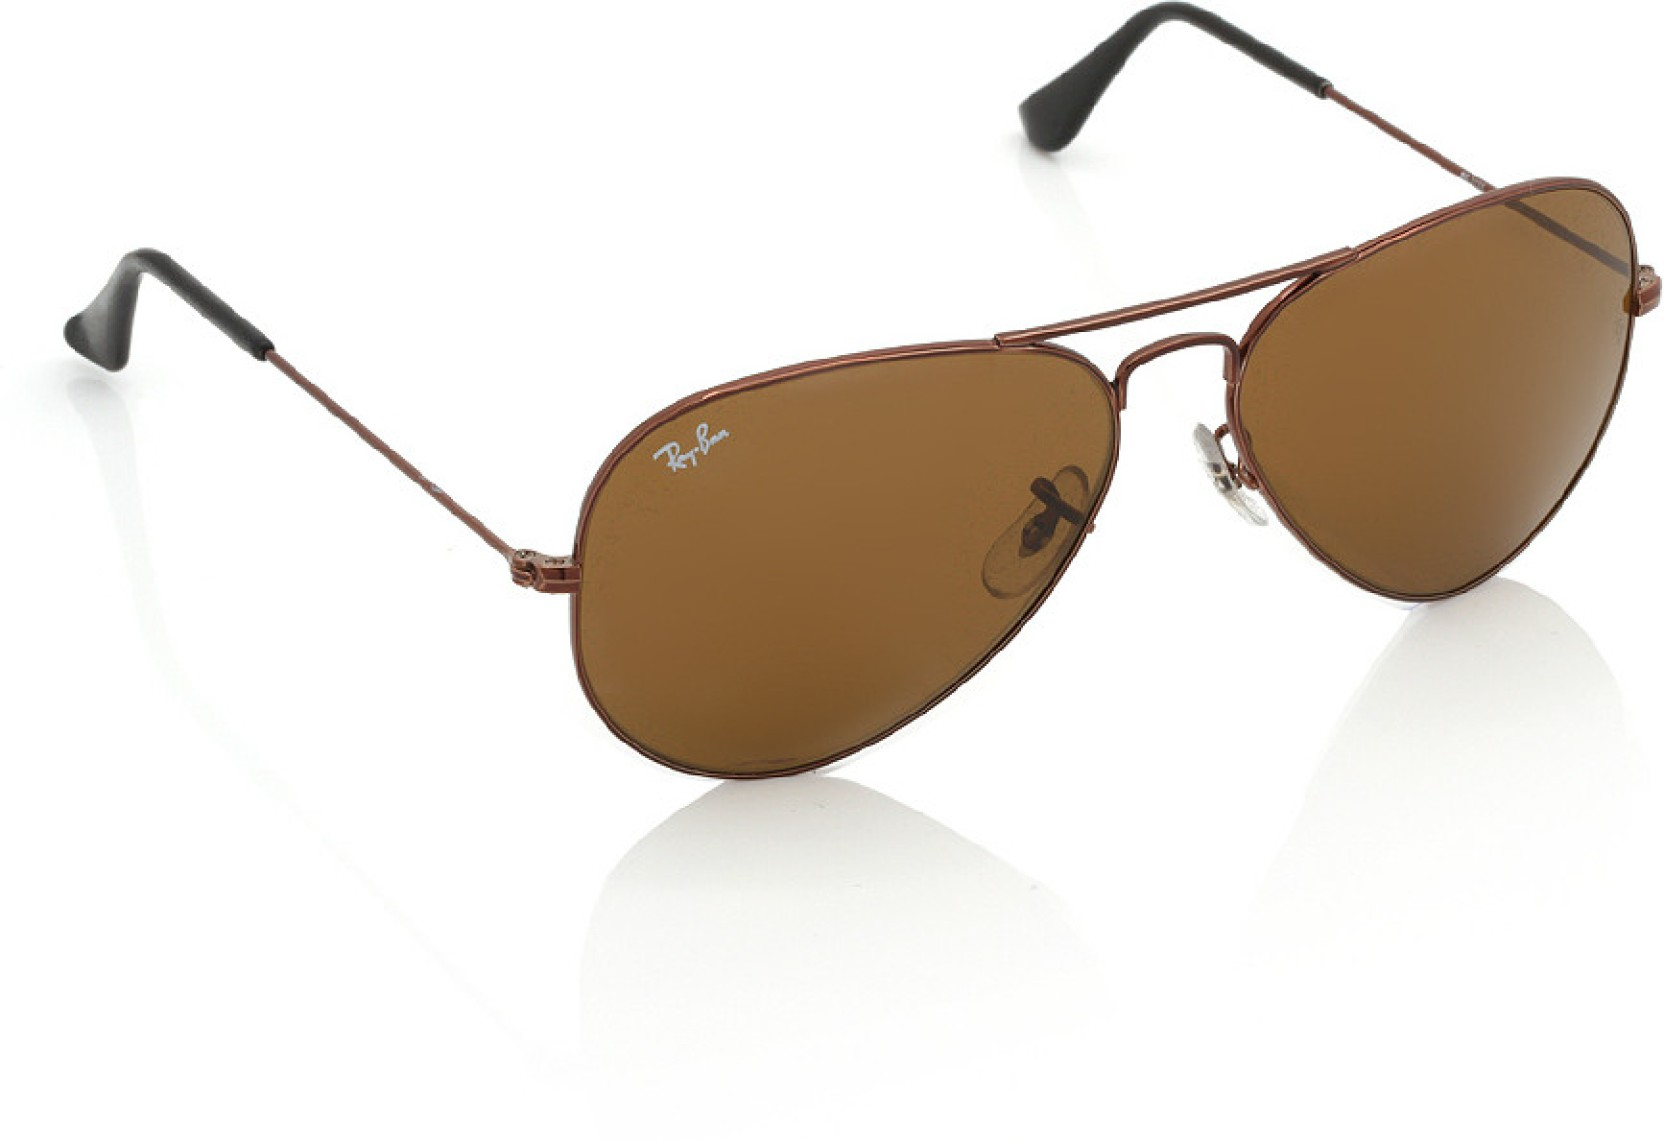 60f2ec6d58ed71 Buy Ray-Ban Aviator Sunglasses Brown For Women Online   Best Prices ...